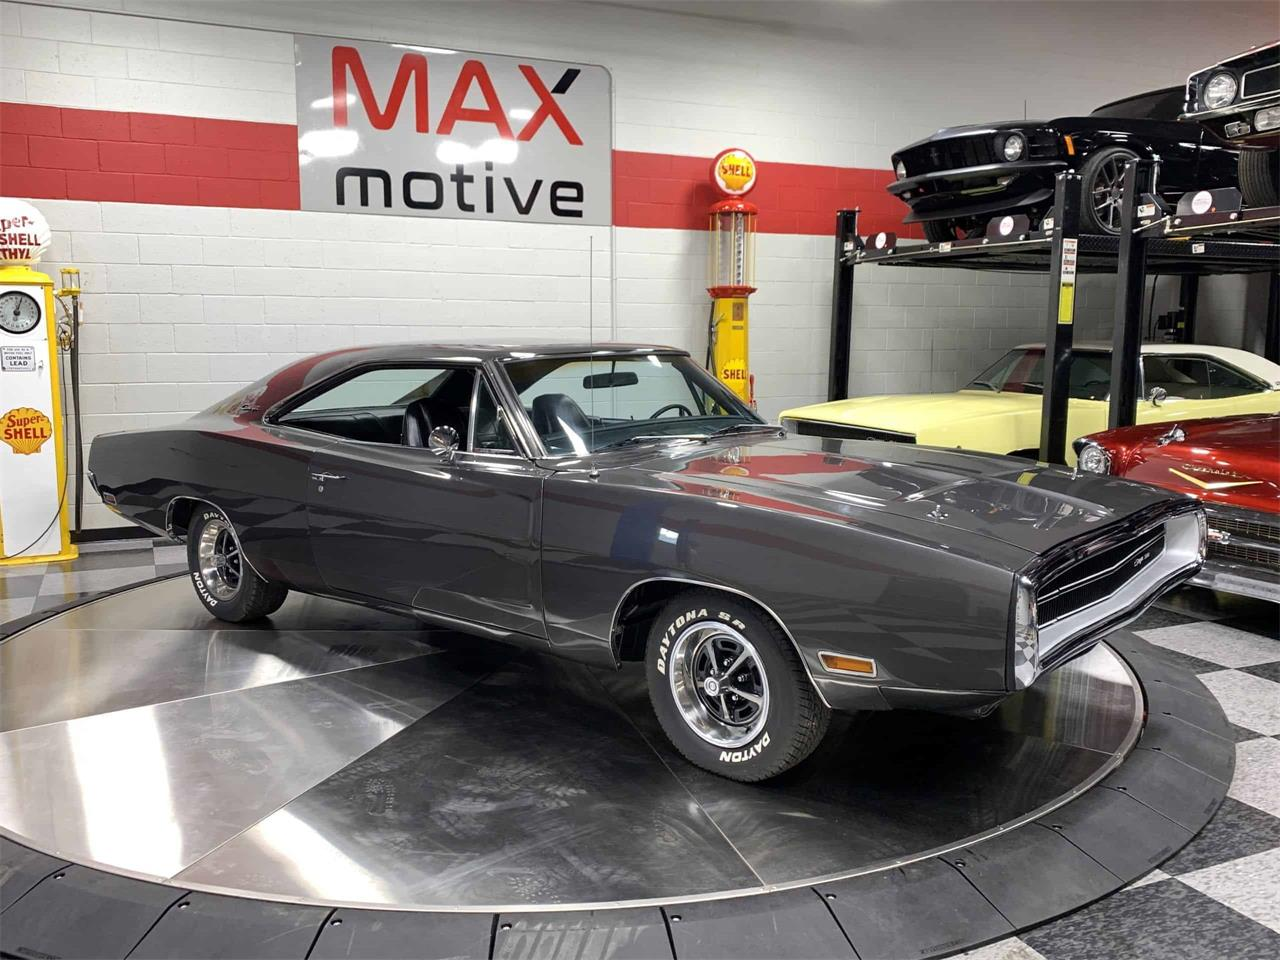 for sale 1970 dodge charger in pittsburgh, pennsylvania cars - pittsburgh, pa at geebo